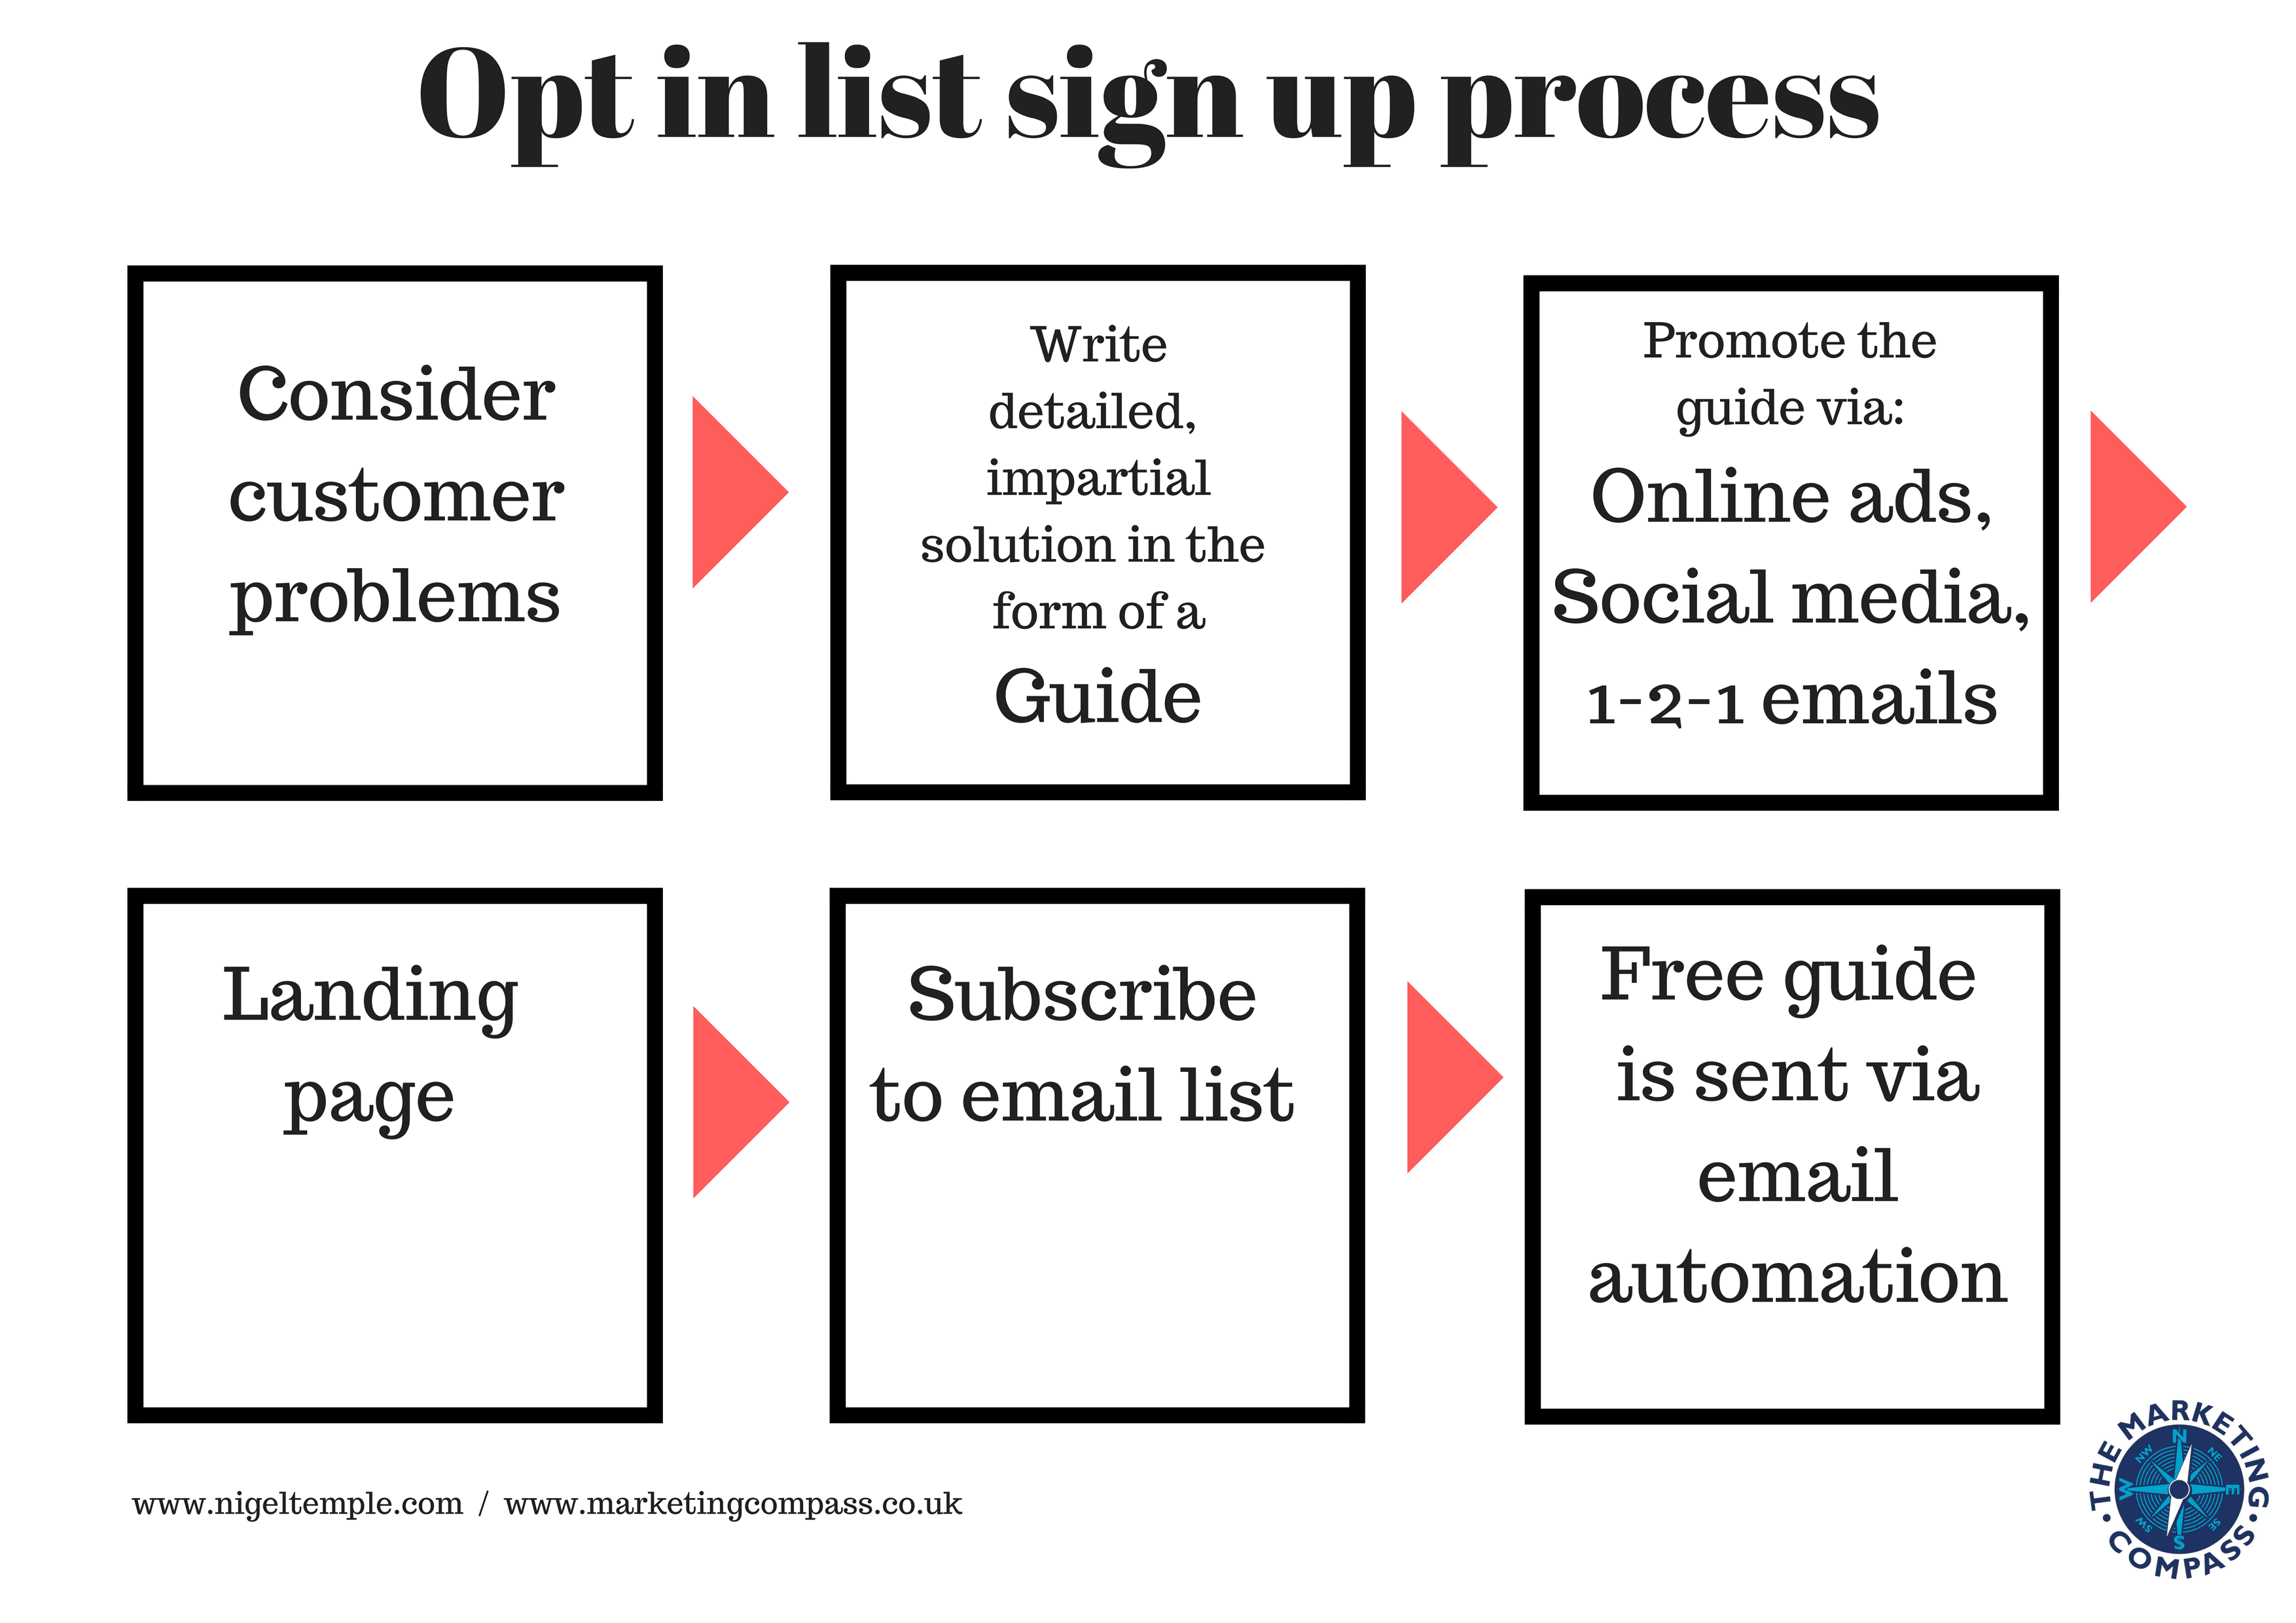 Opt in email list sign up process